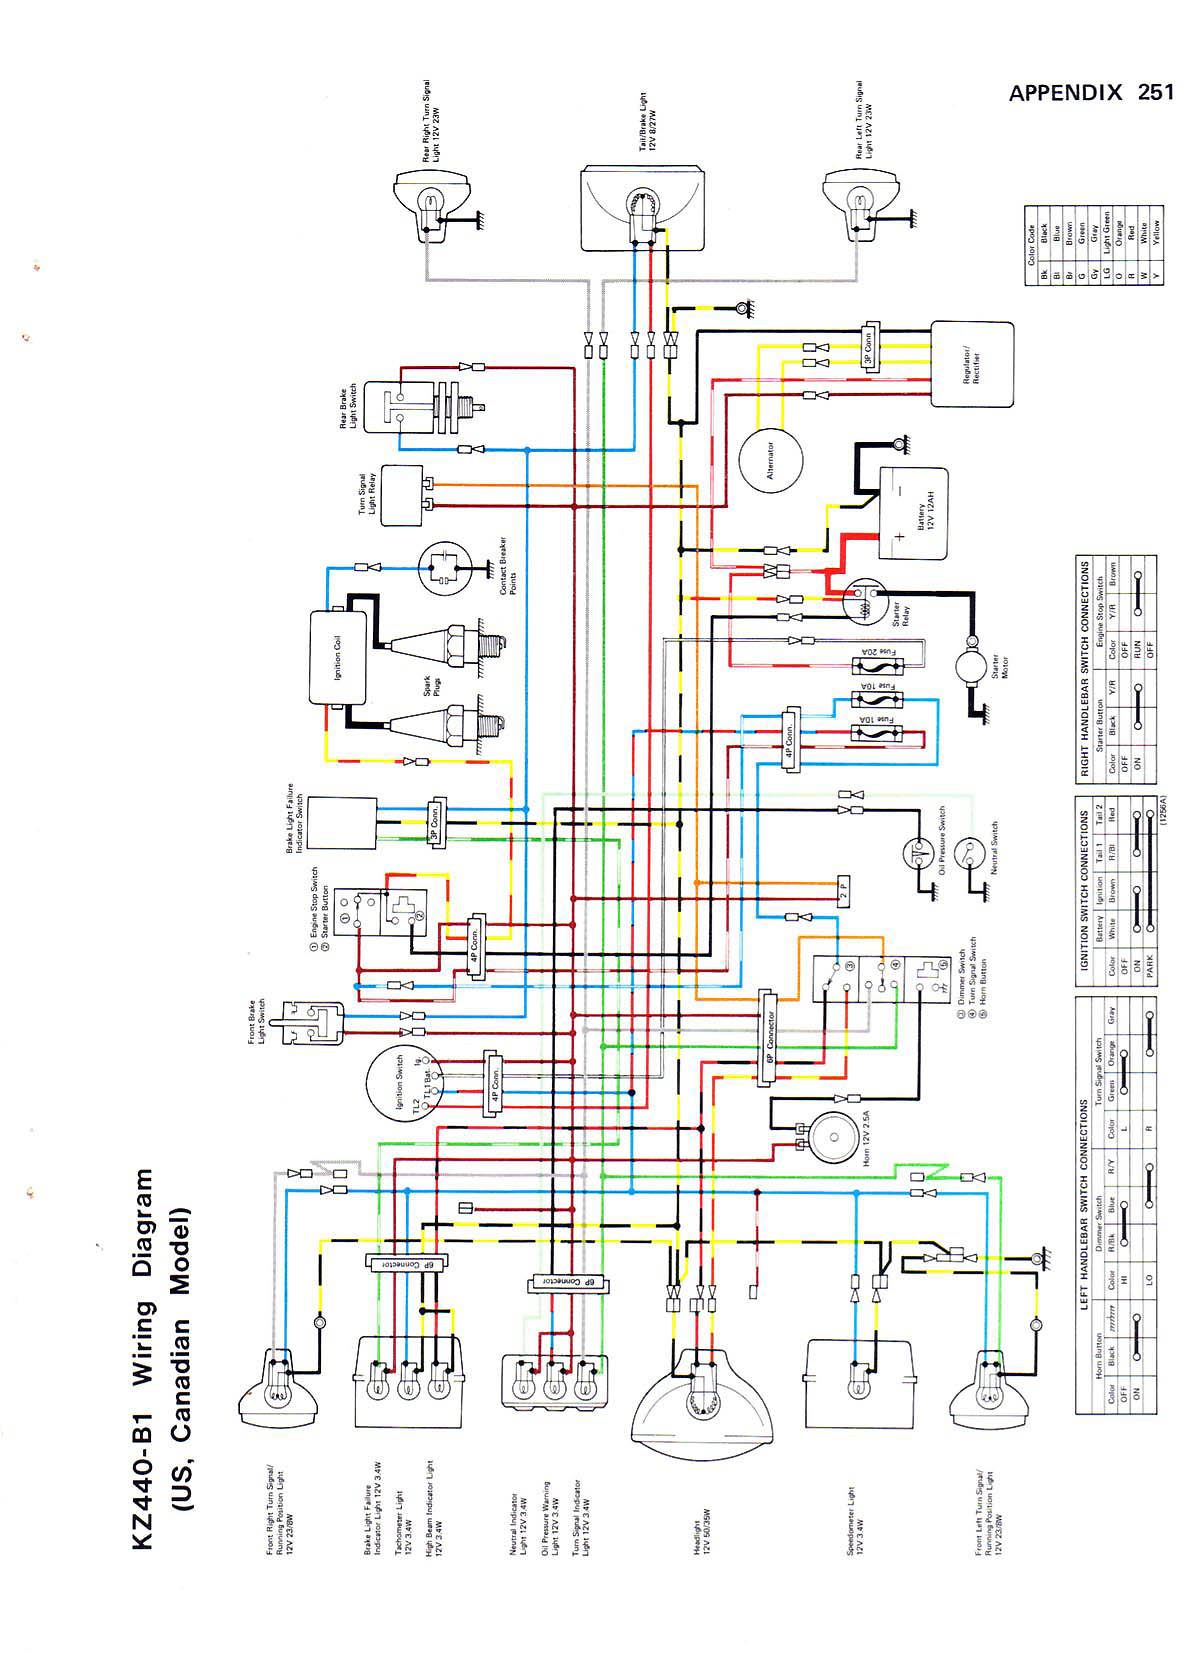 1980 Kawasaki Ltd 440 Wiring Diagram Schematics Diagrams Ke100 Kz440 Detailed Rh Lelandlutheran Com